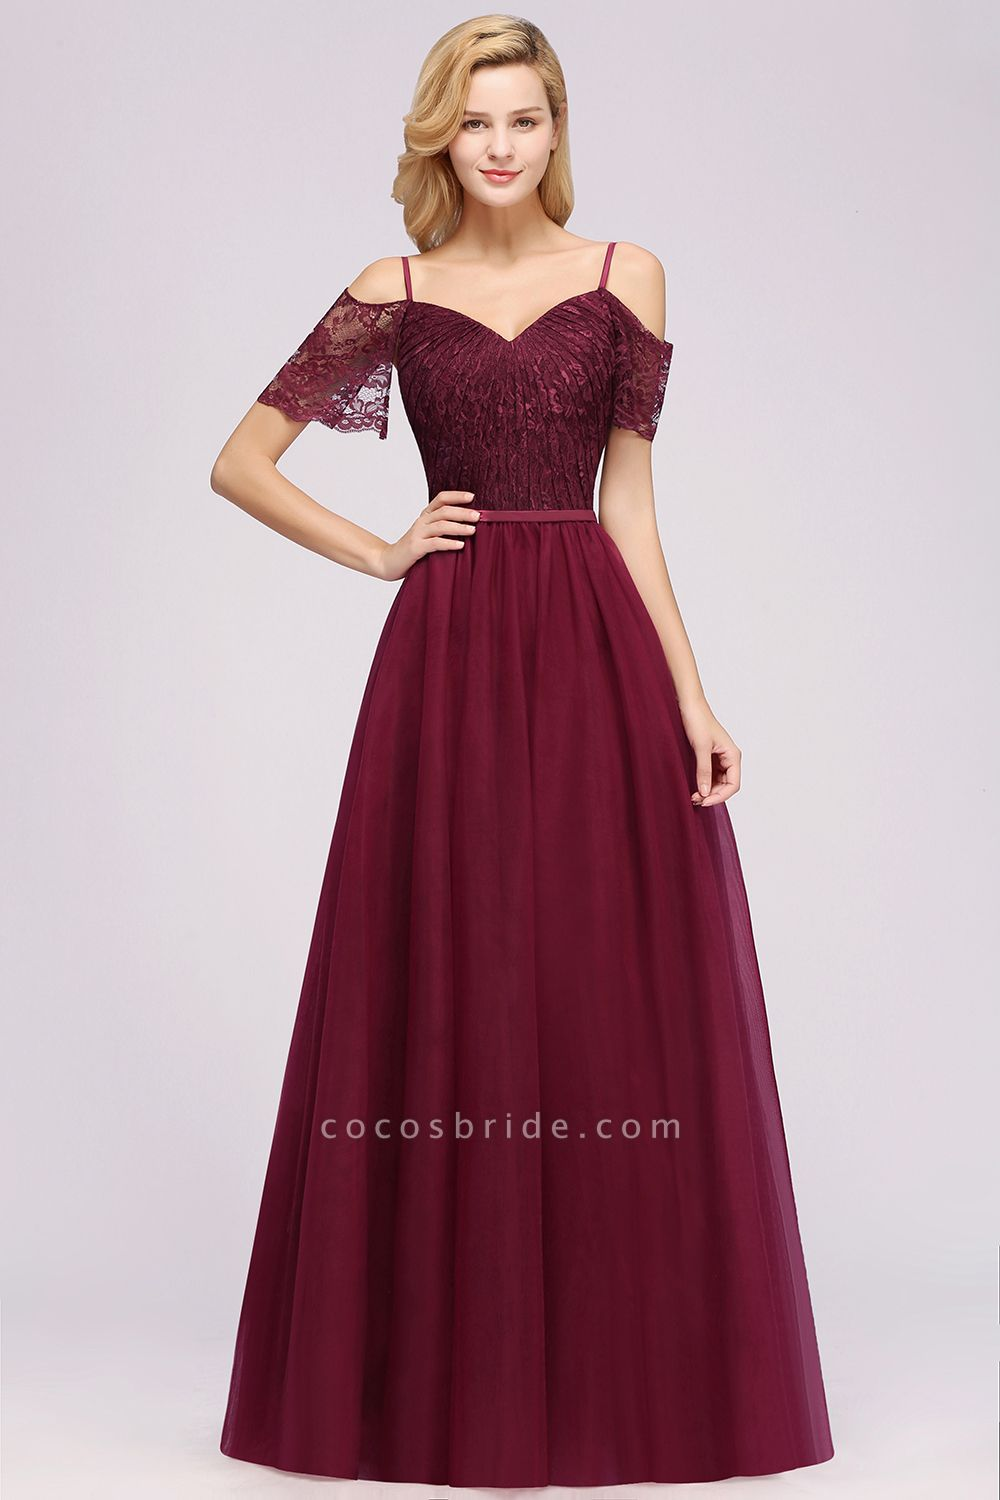 A-Line Chiffon Lace Sweetheart Spaghetti Straps Short-Sleeves Floor-Length Bridesmaid Dresses with Ruffles